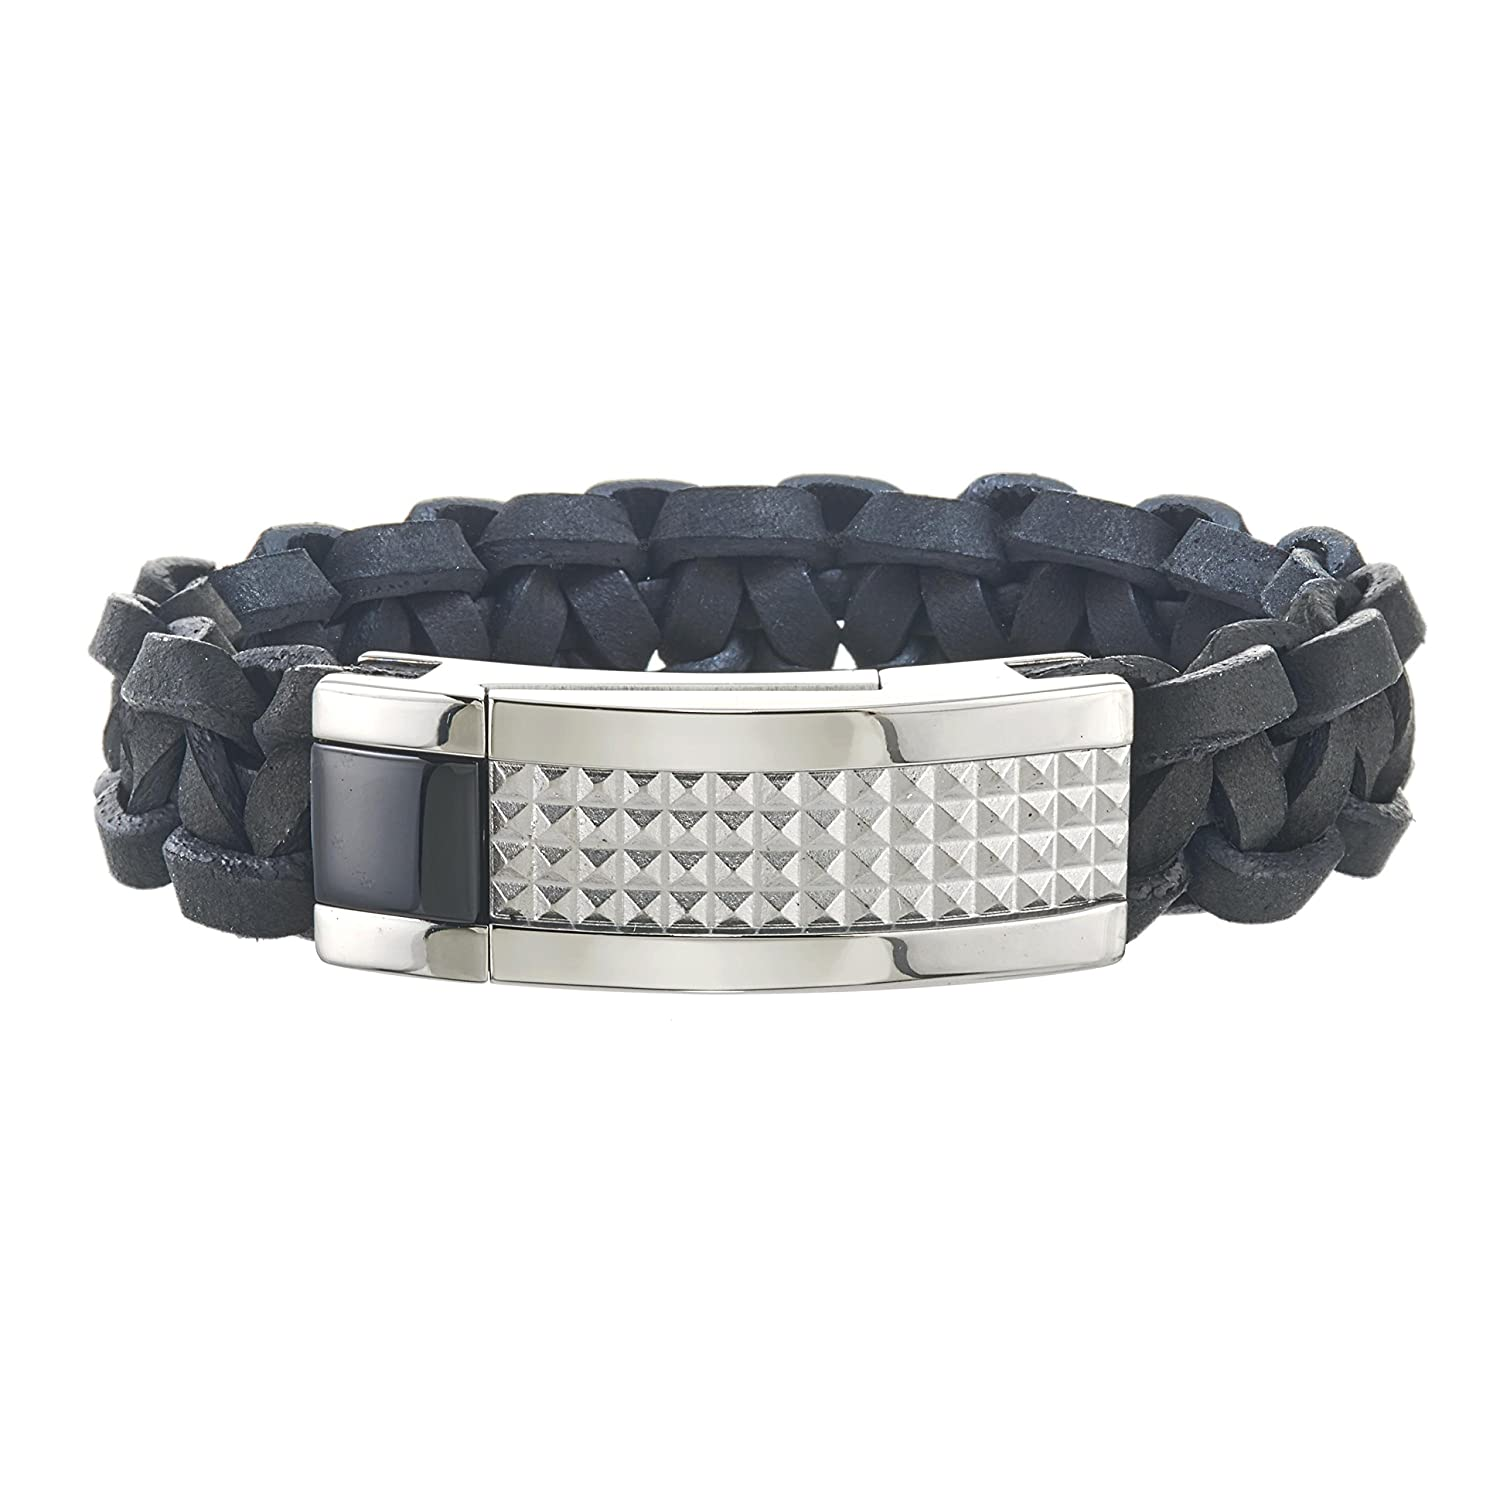 AX Jewelry Mens Stainless Steel Pyramid Black Leather Bracelet